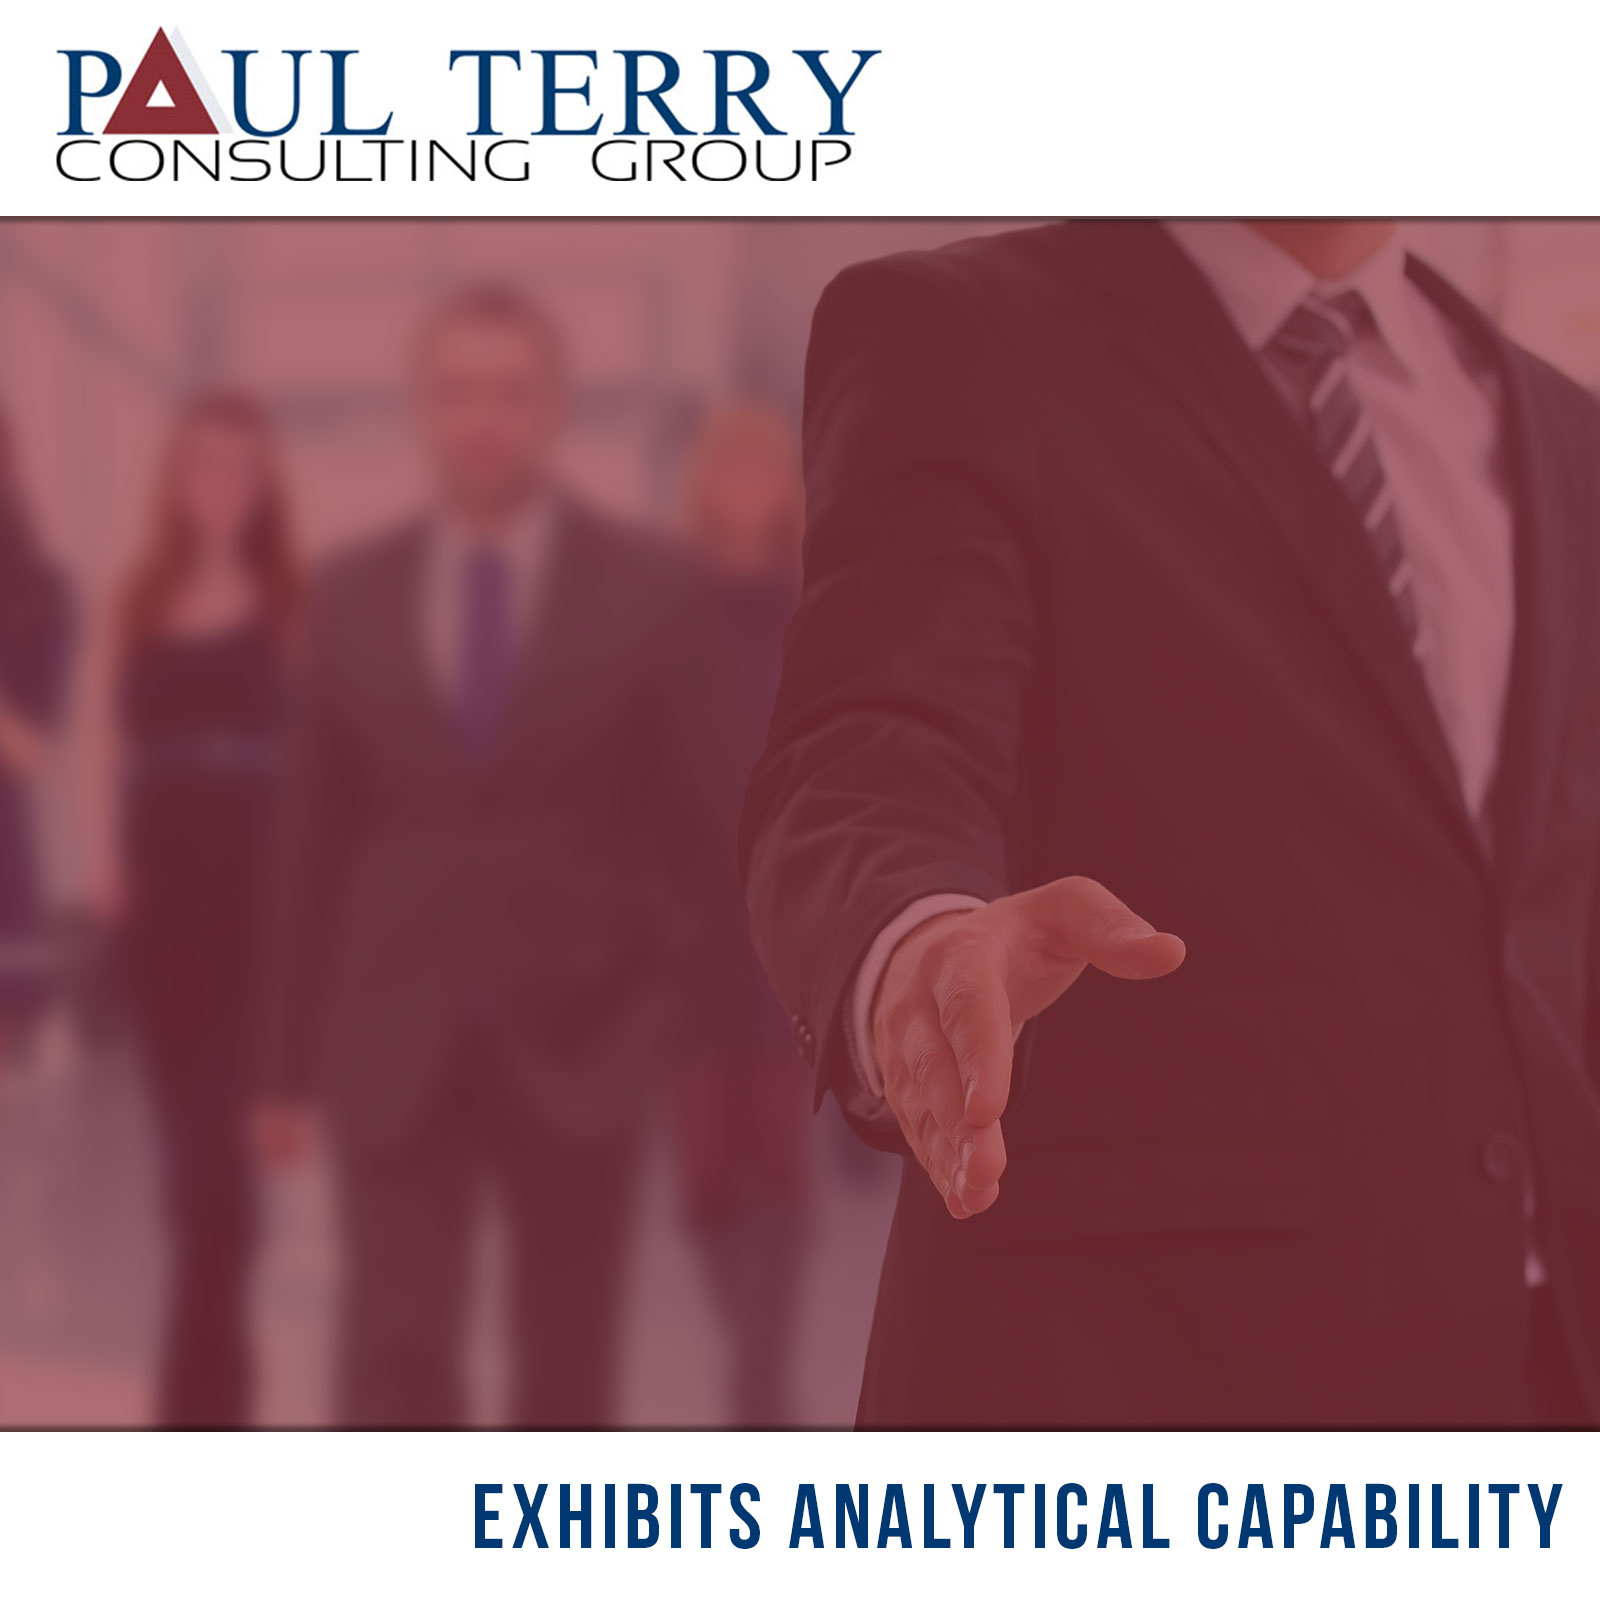 exhibits analytical capability paul terry consulting group exhibits analytical capability for web